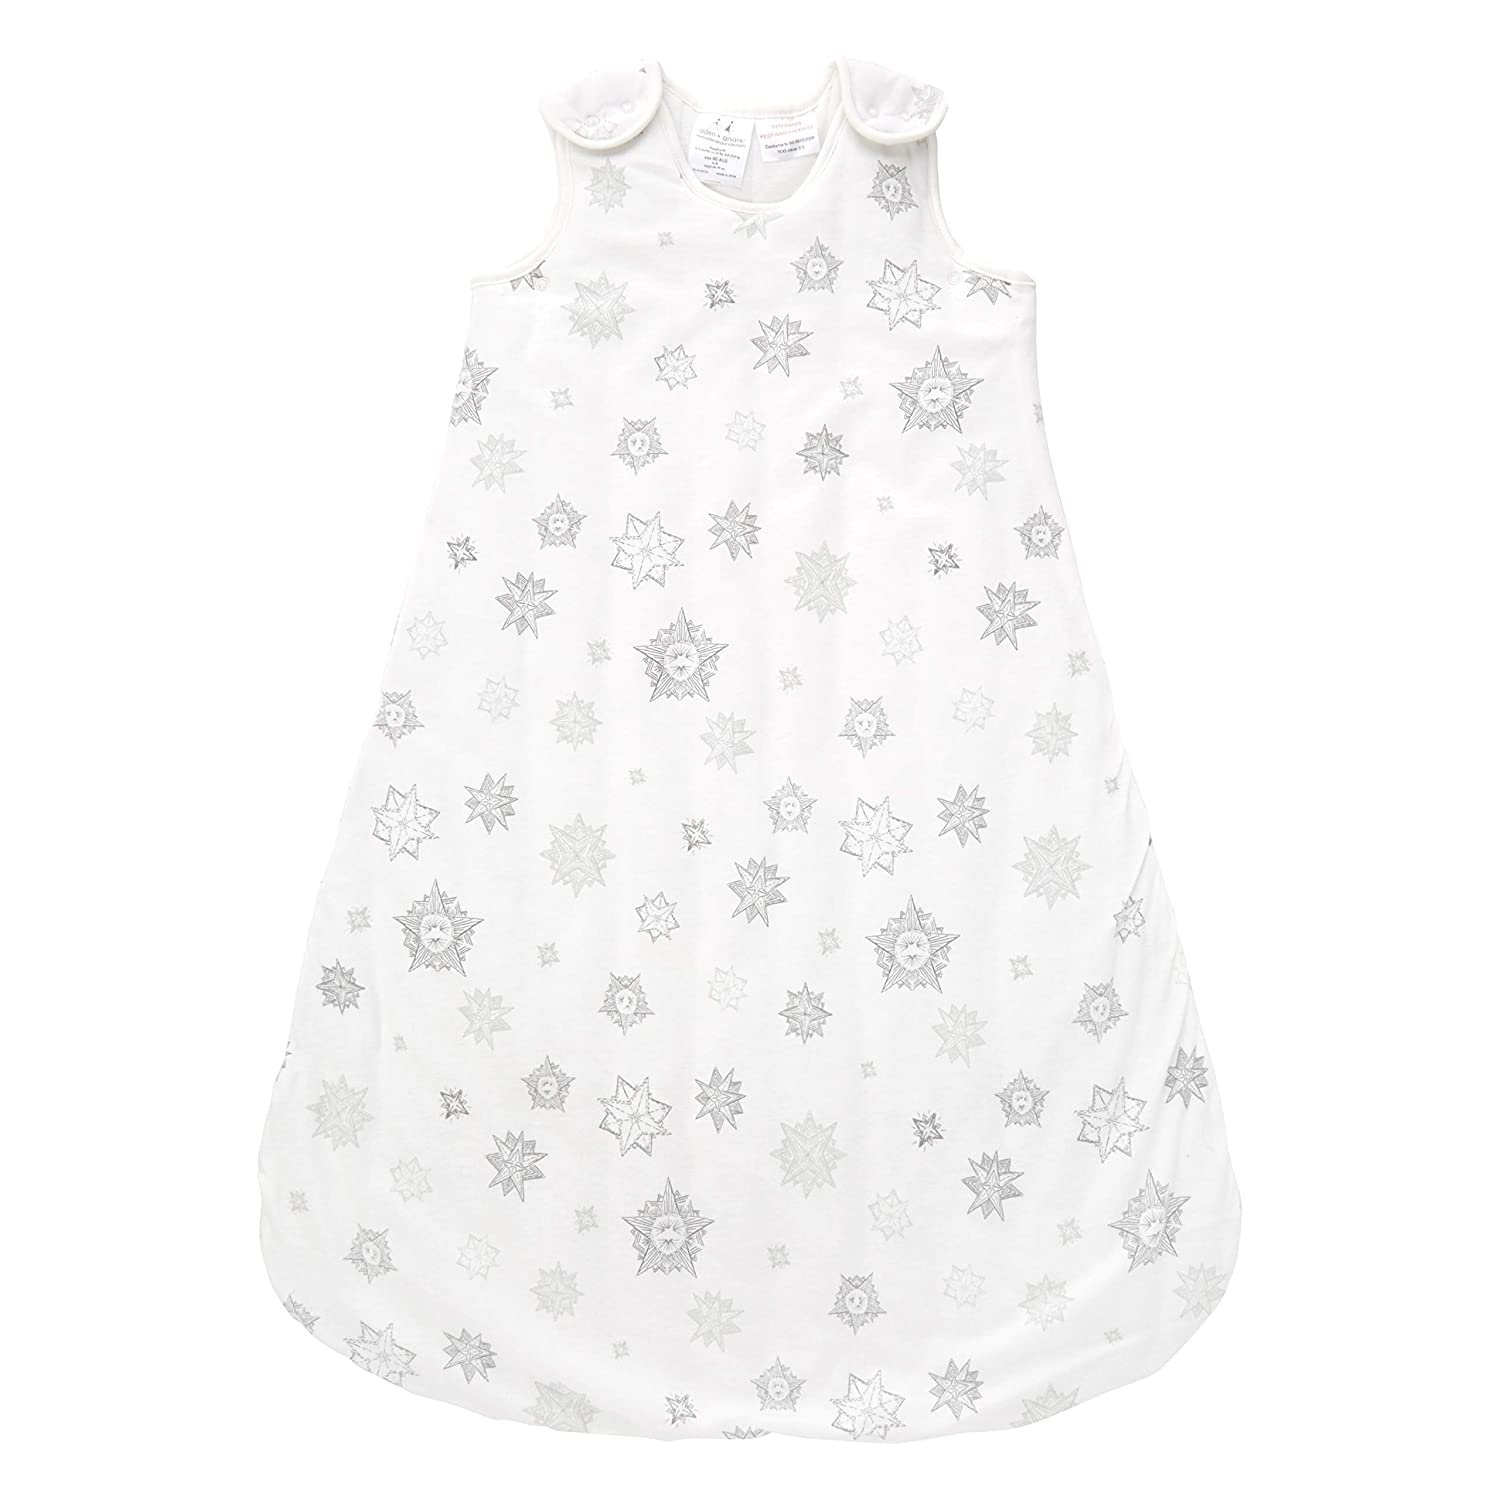 Amazon.com: aden + anais Winter Sleeping Bag - Starry Stars - 6-18m: Baby